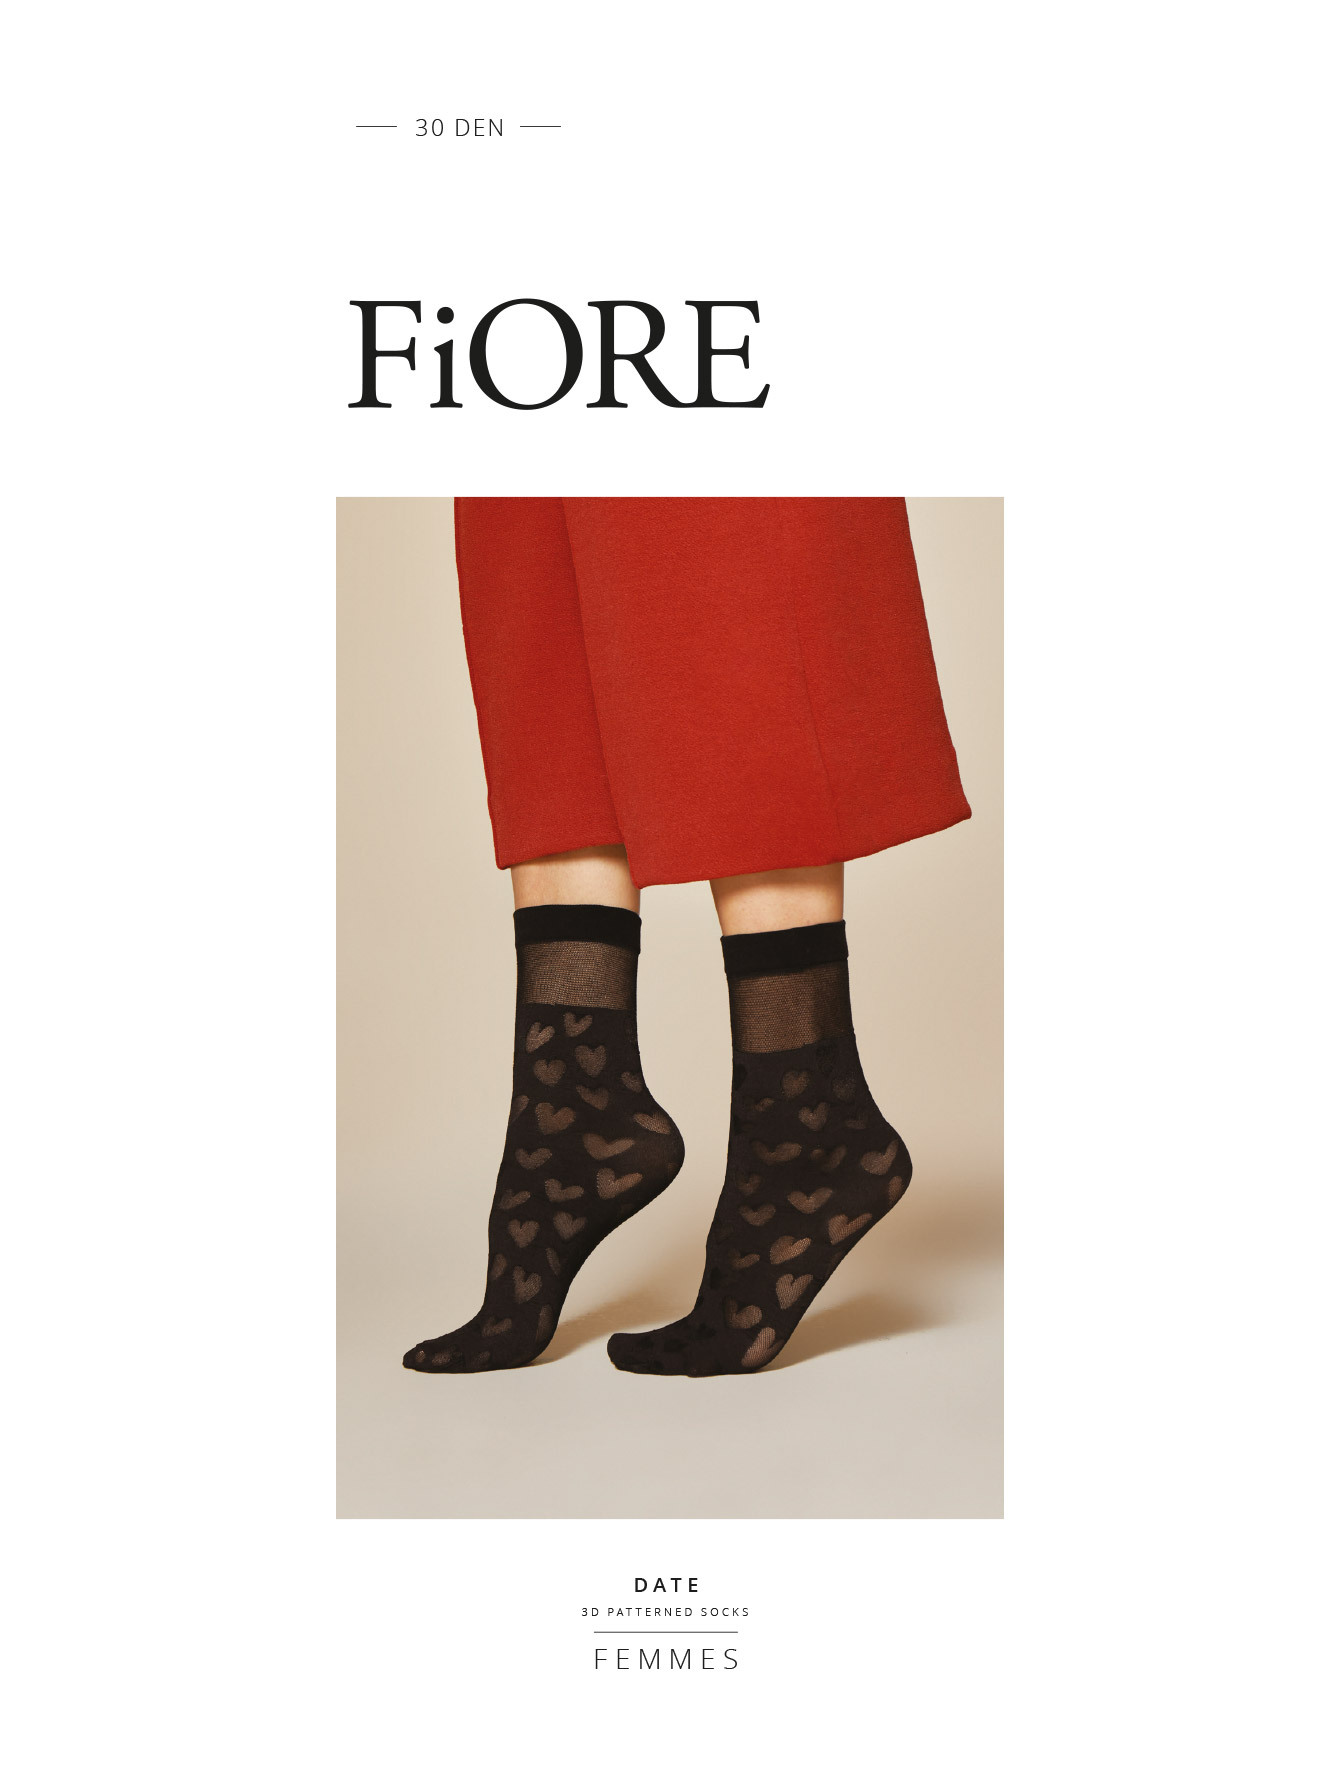 Fiore: Love Cloud Nylon Socks SOLD OUT